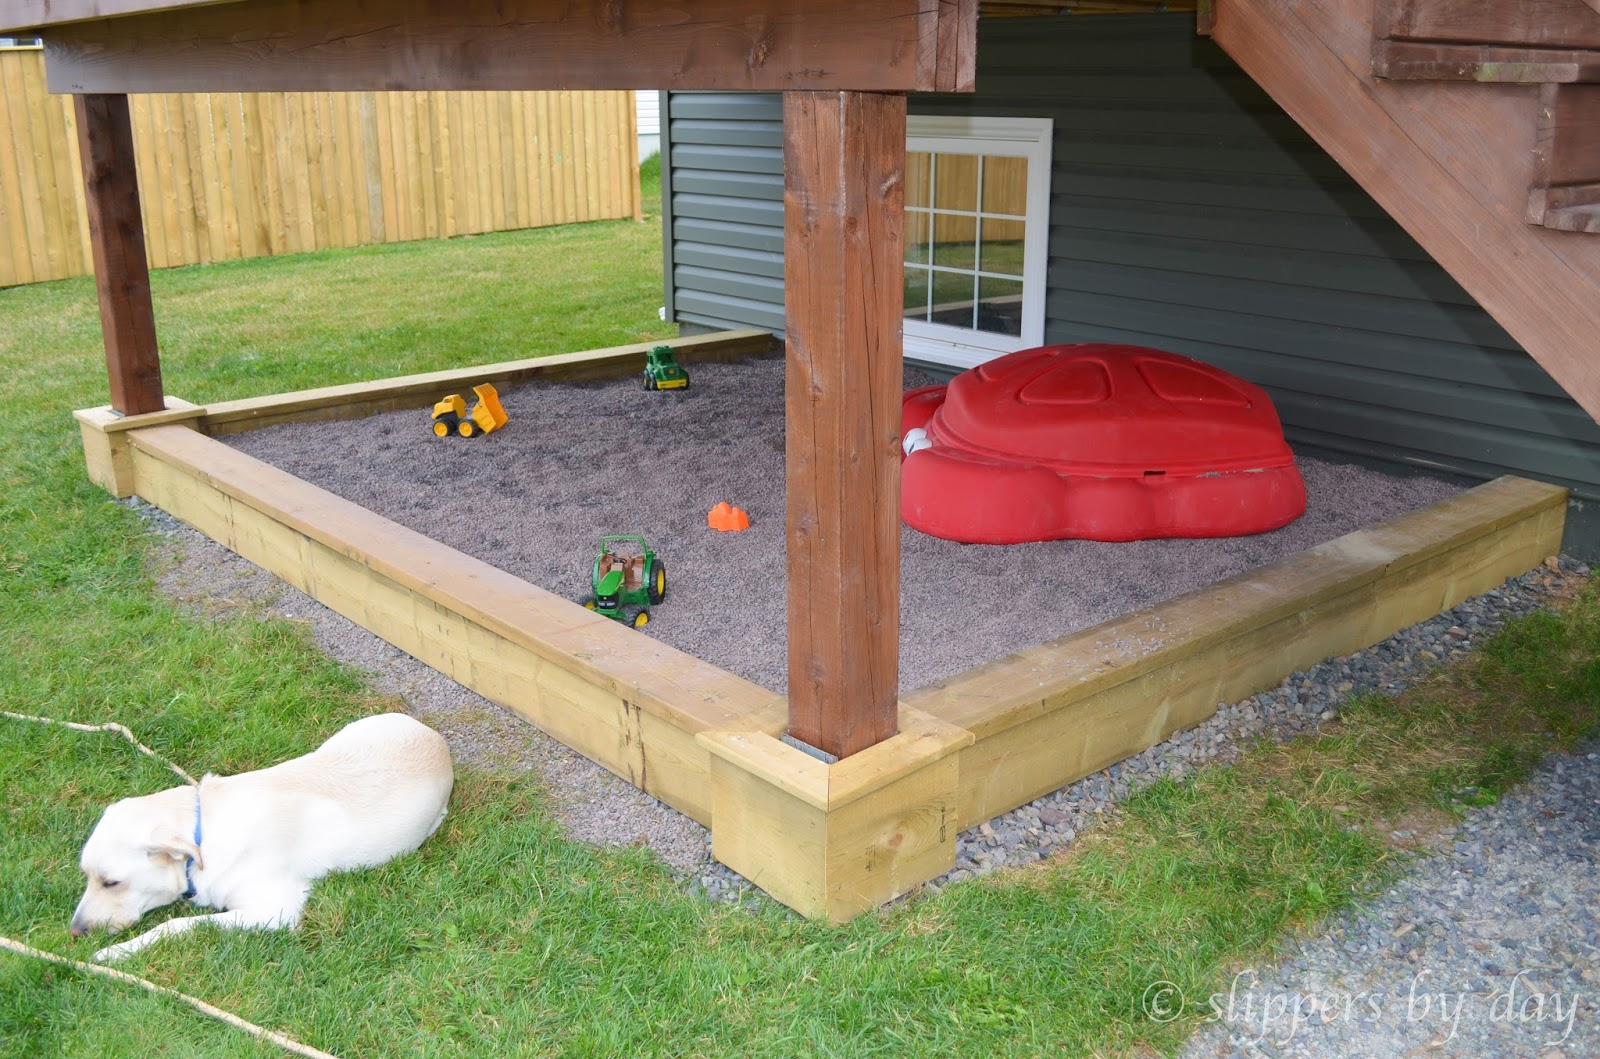 slippers by day diy sandbox beneath a raised deck. Black Bedroom Furniture Sets. Home Design Ideas